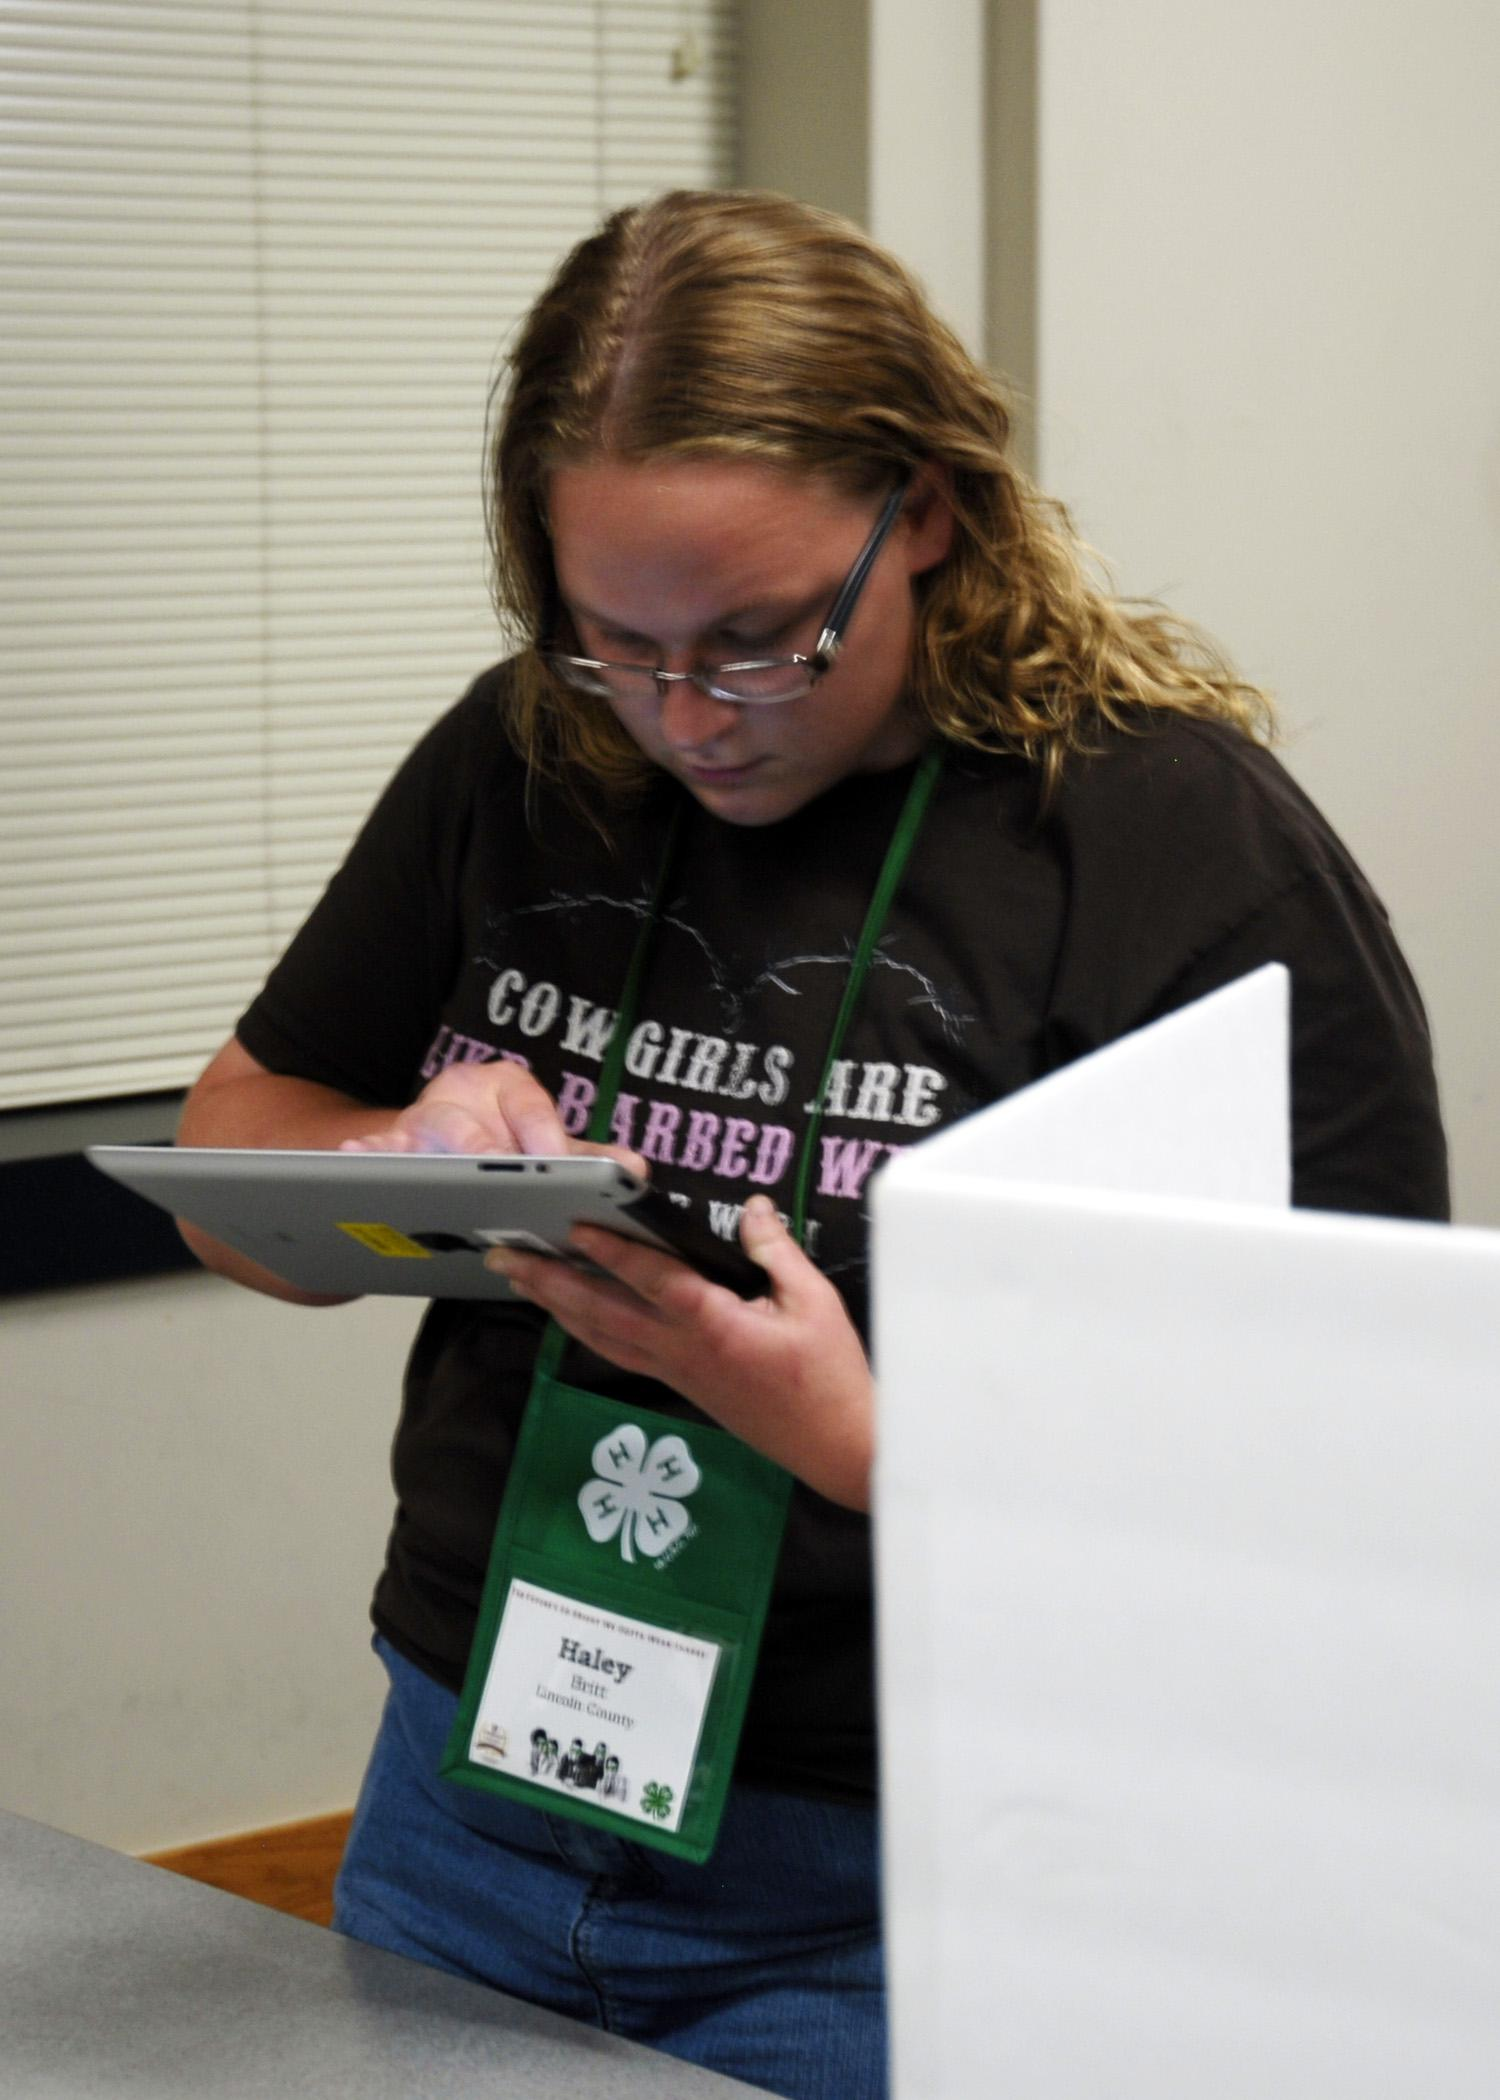 Haley Britt of Lincoln County uses an iPad instead of a paper ballot on May 28, 2014 to vote for State 4-H Council officers during the annual 4-H Club Congress at Mississippi State University. (Photo by MSU Ag Communications/Libby Durst)